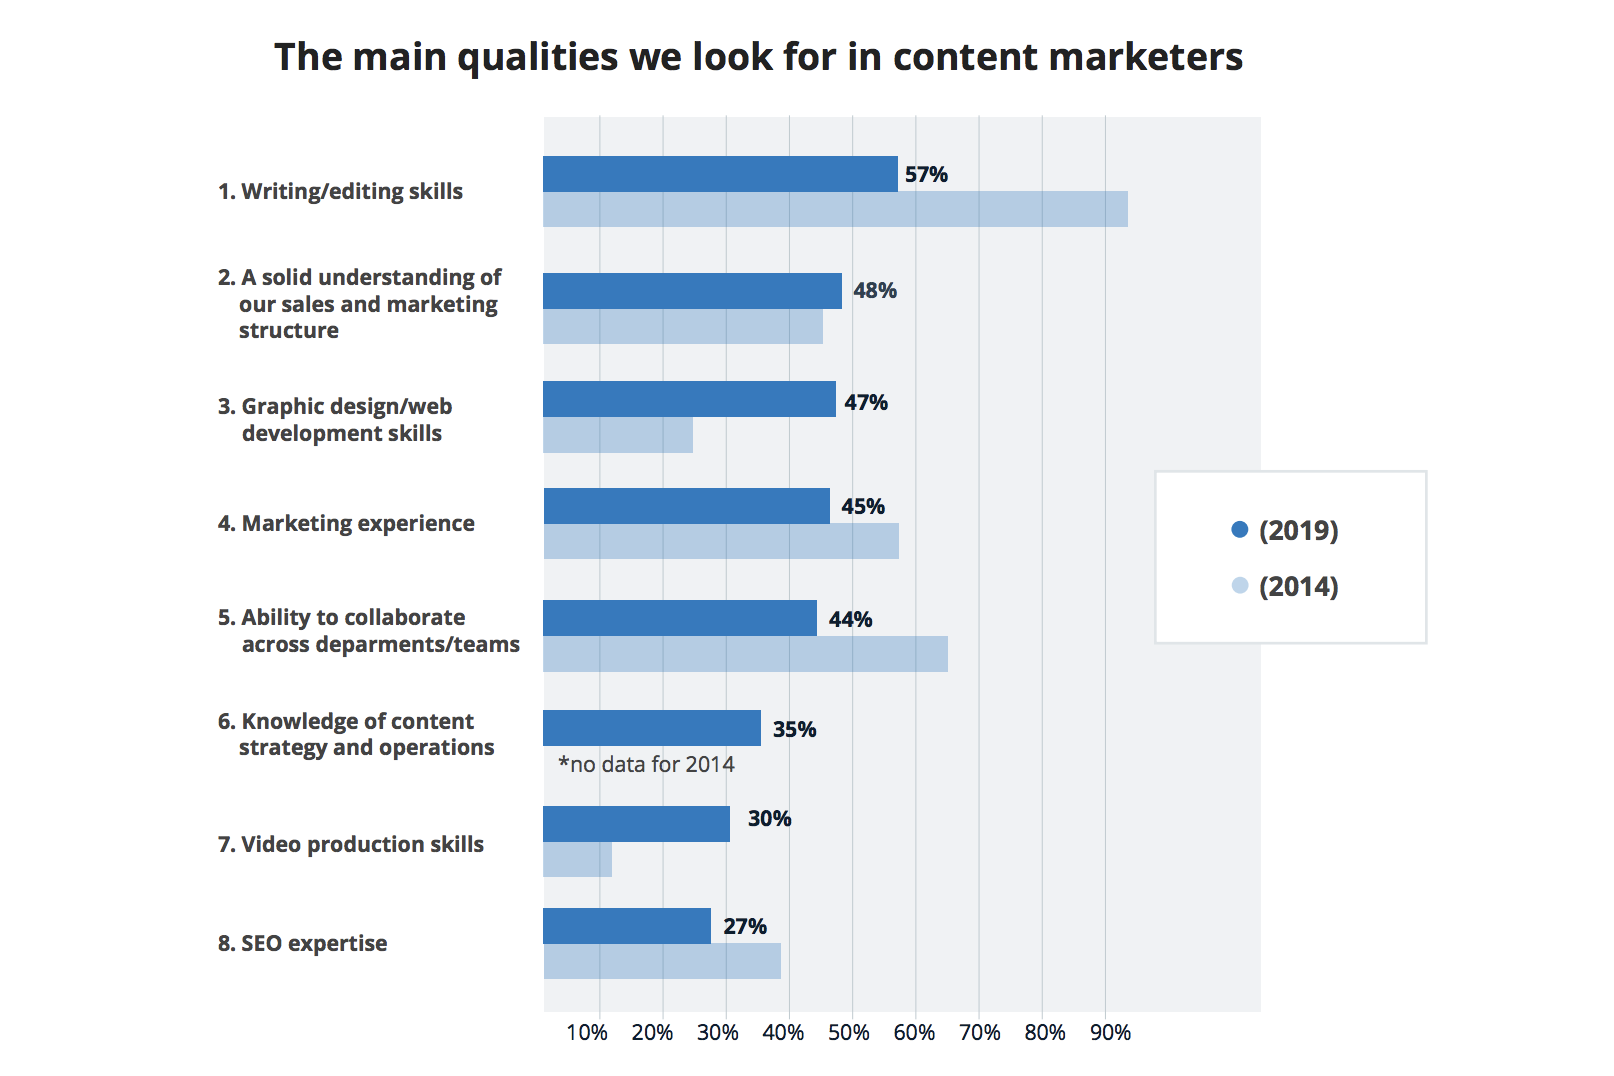 Qualities Content Marketers